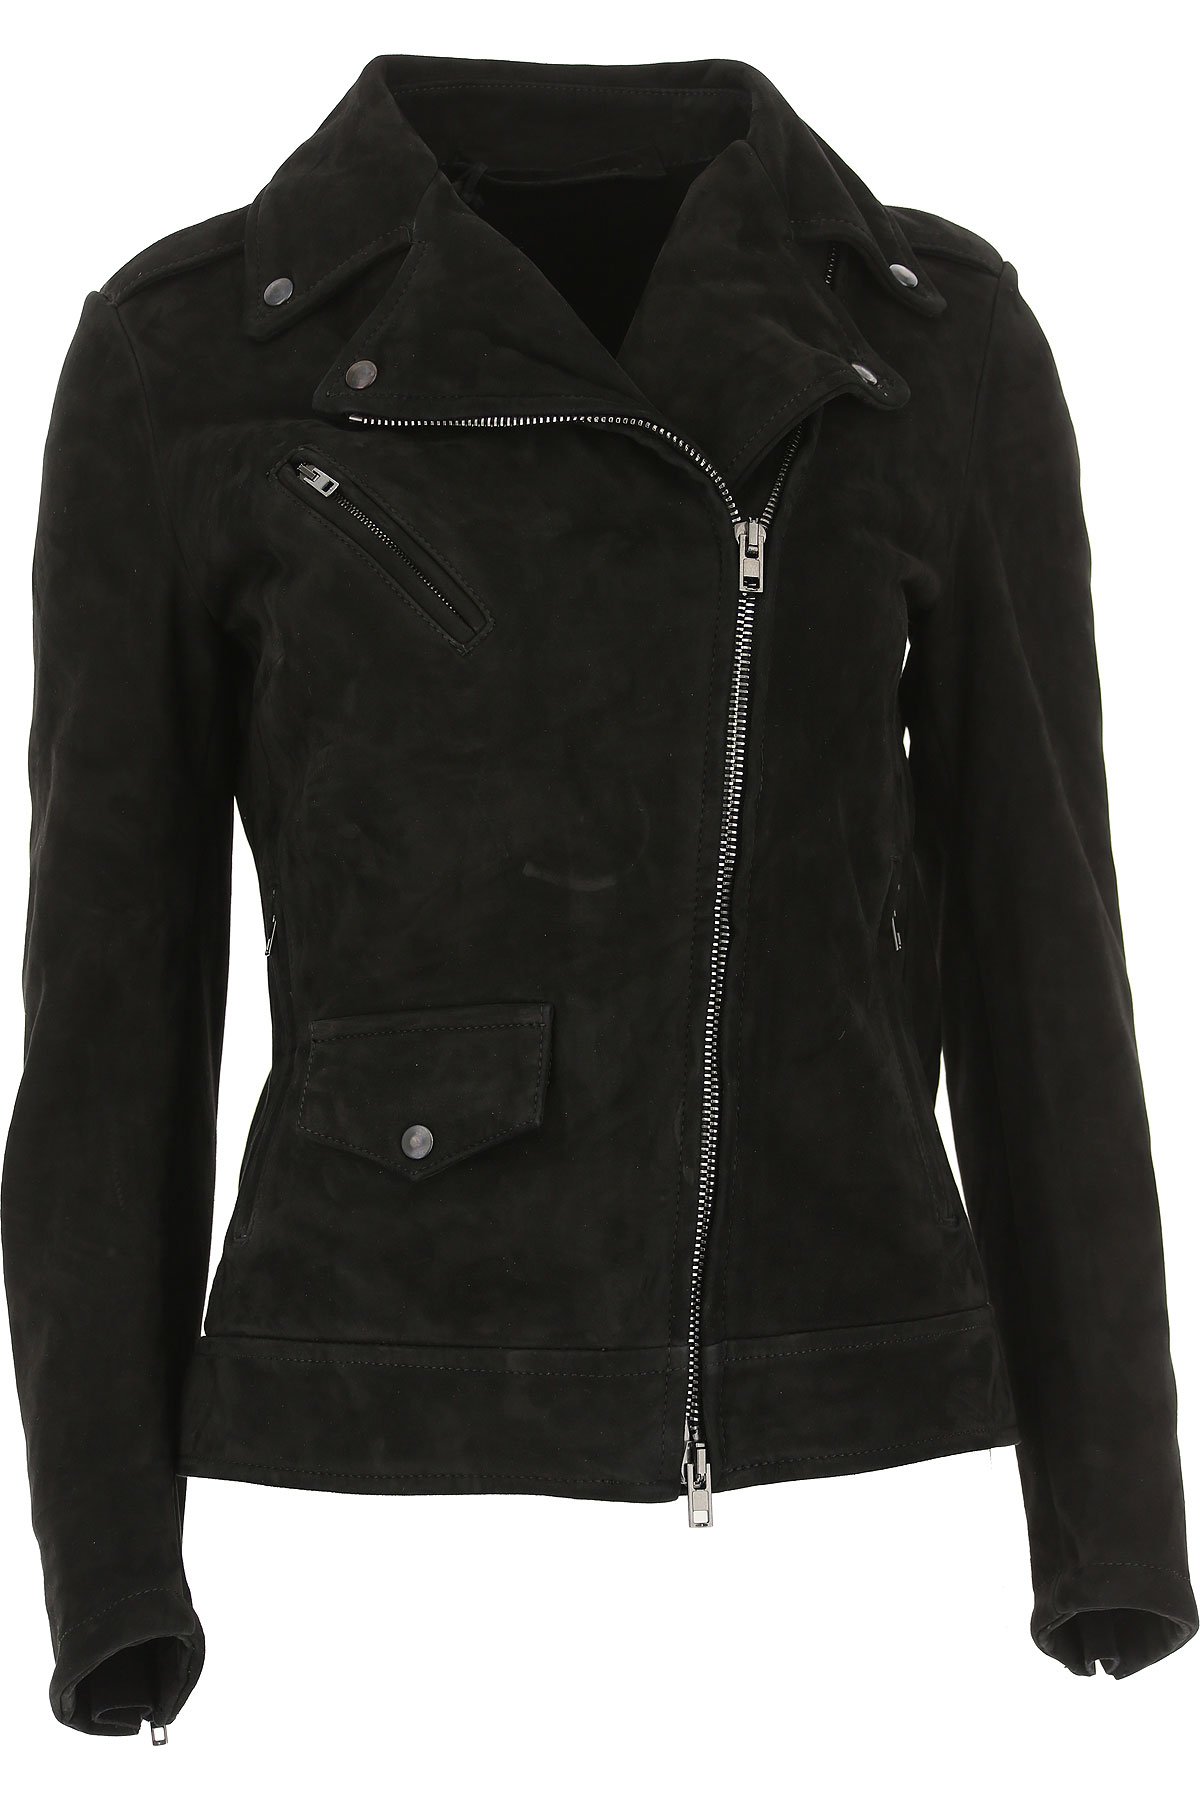 Image of Salvatore Santoro Leather Jacket for Women, Black, Leather, 2017, 10